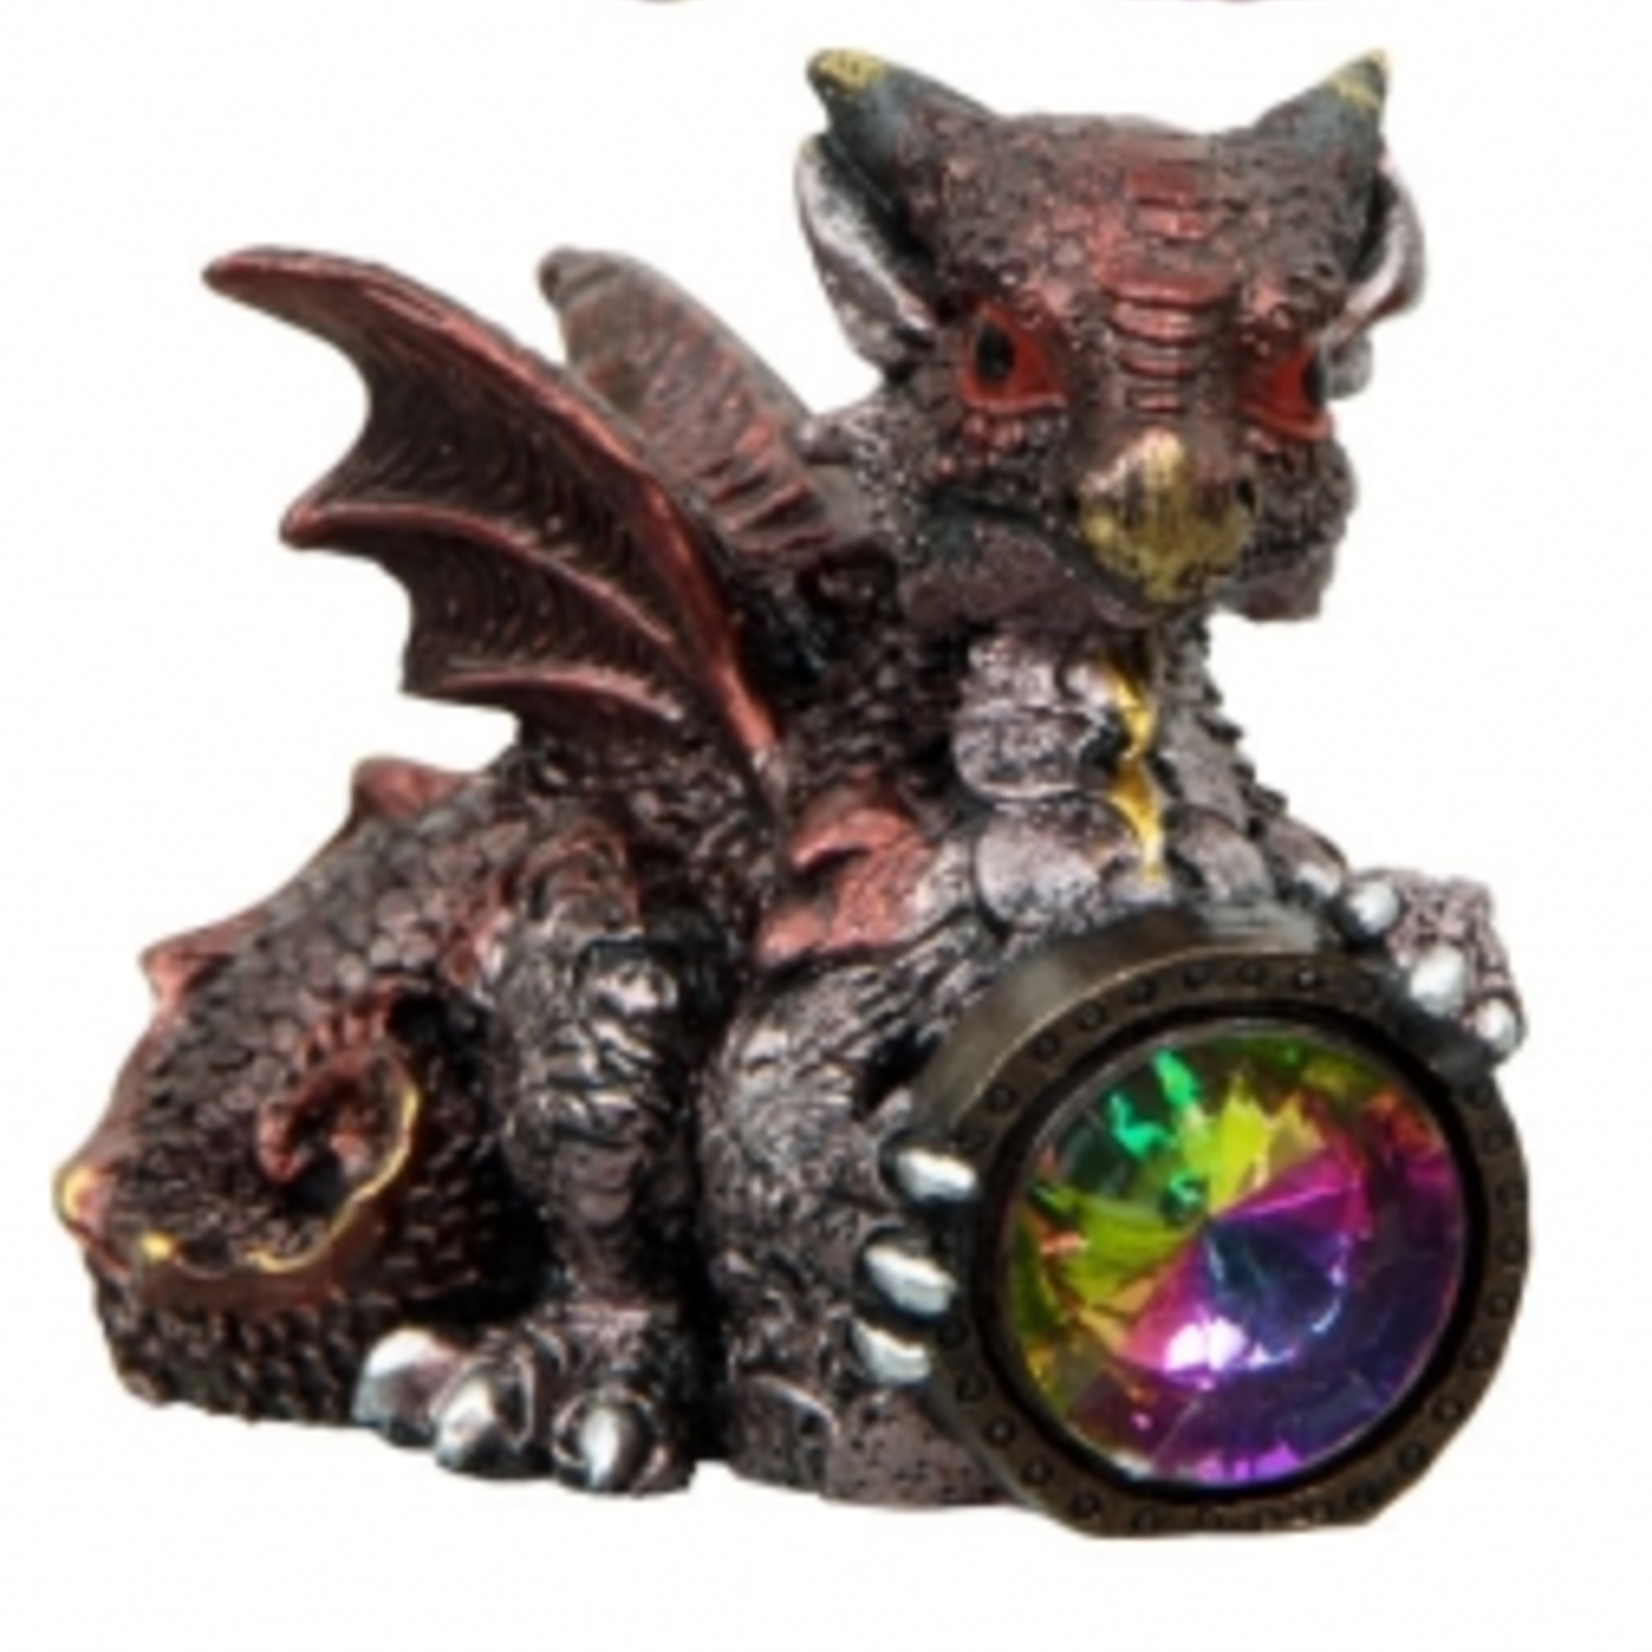 Small Red Baby Dragon with Gem